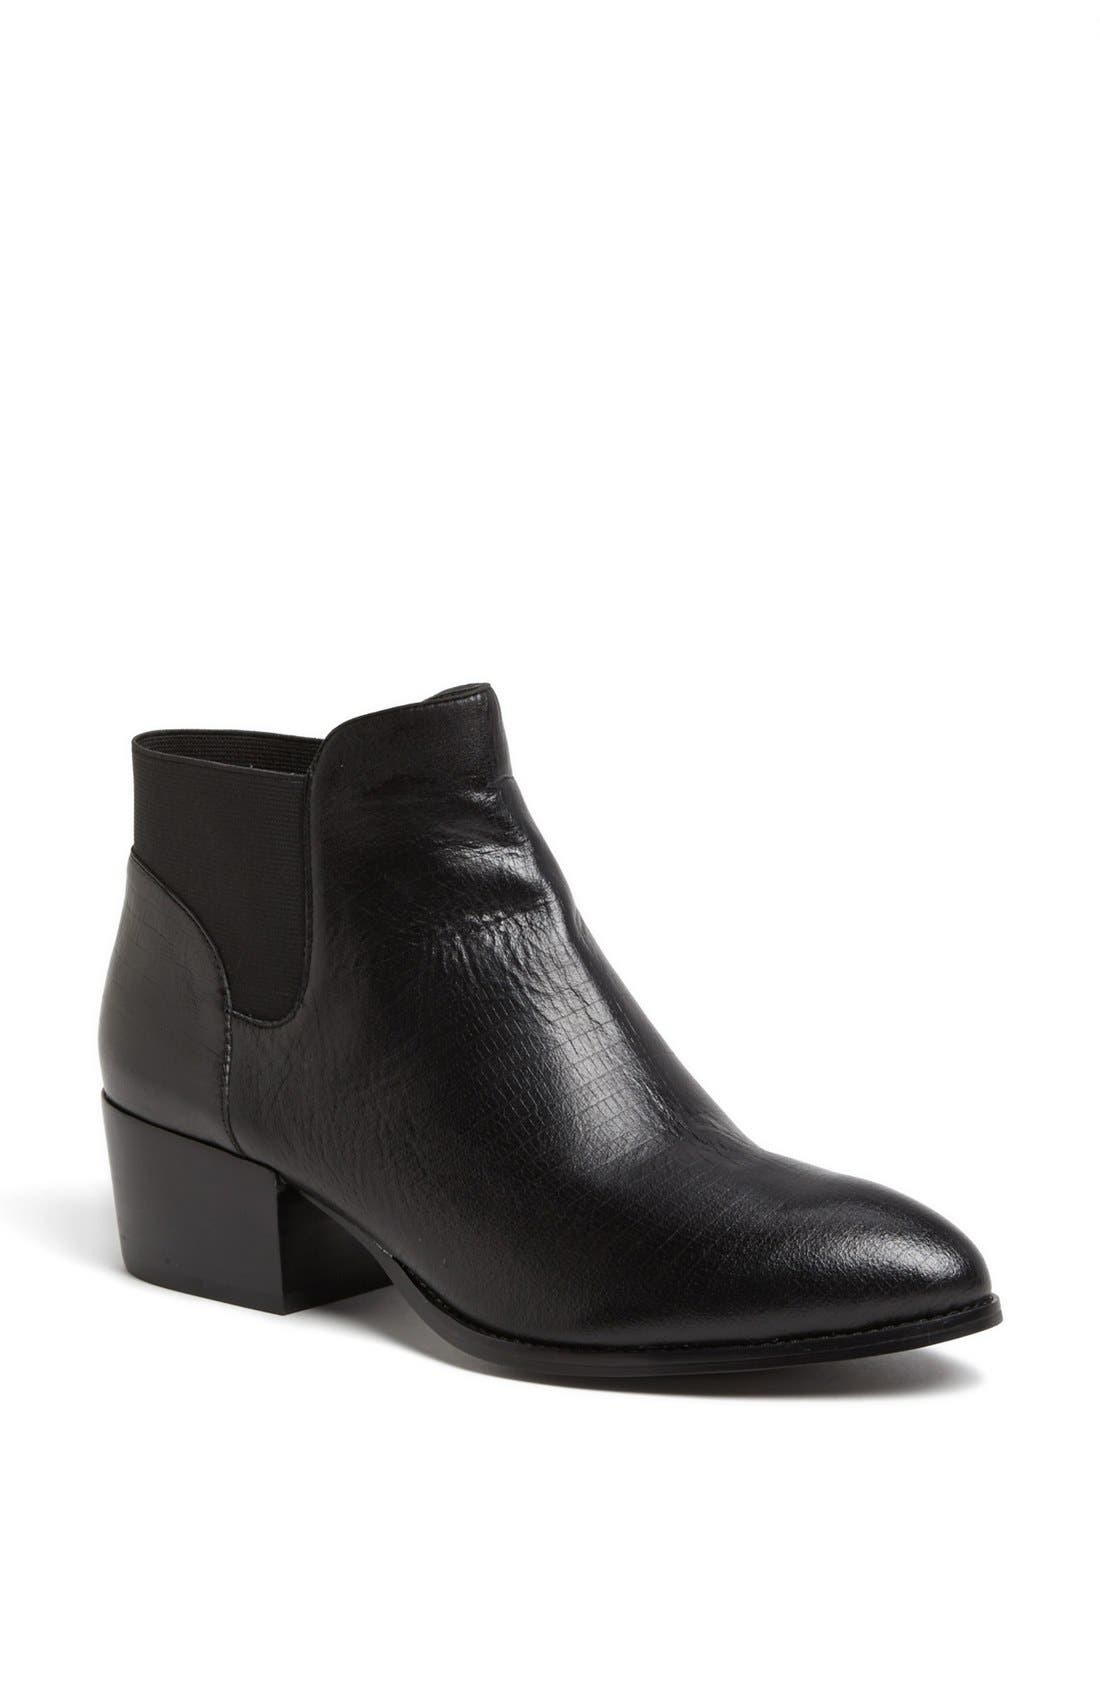 Alternate Image 1 Selected - KG Kurt Geiger 'Scout' Bootie